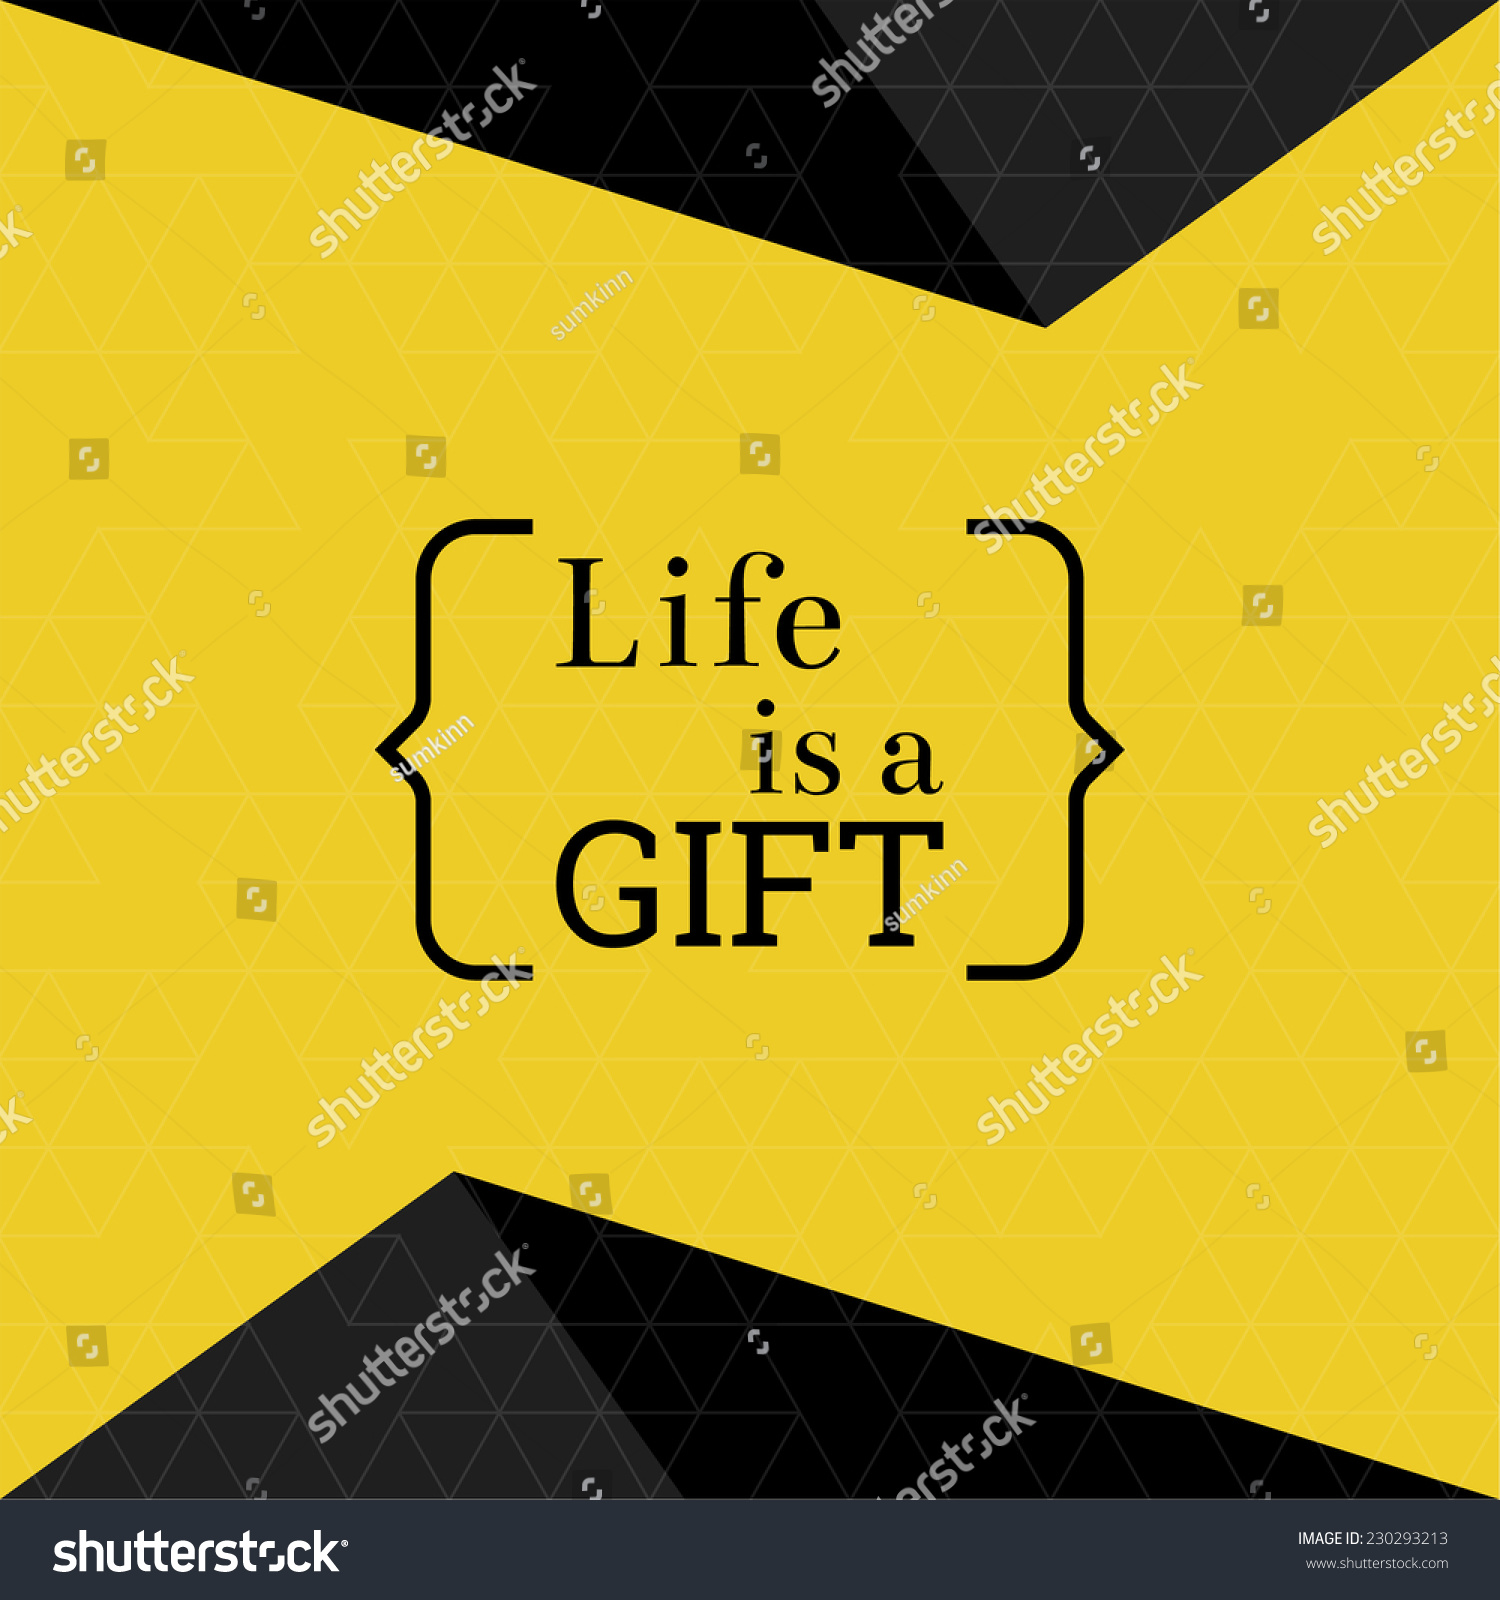 Wise Sayings And Quotes About Life Inspirational Quote Life Gift Wise Saying Stock Vector 230293213